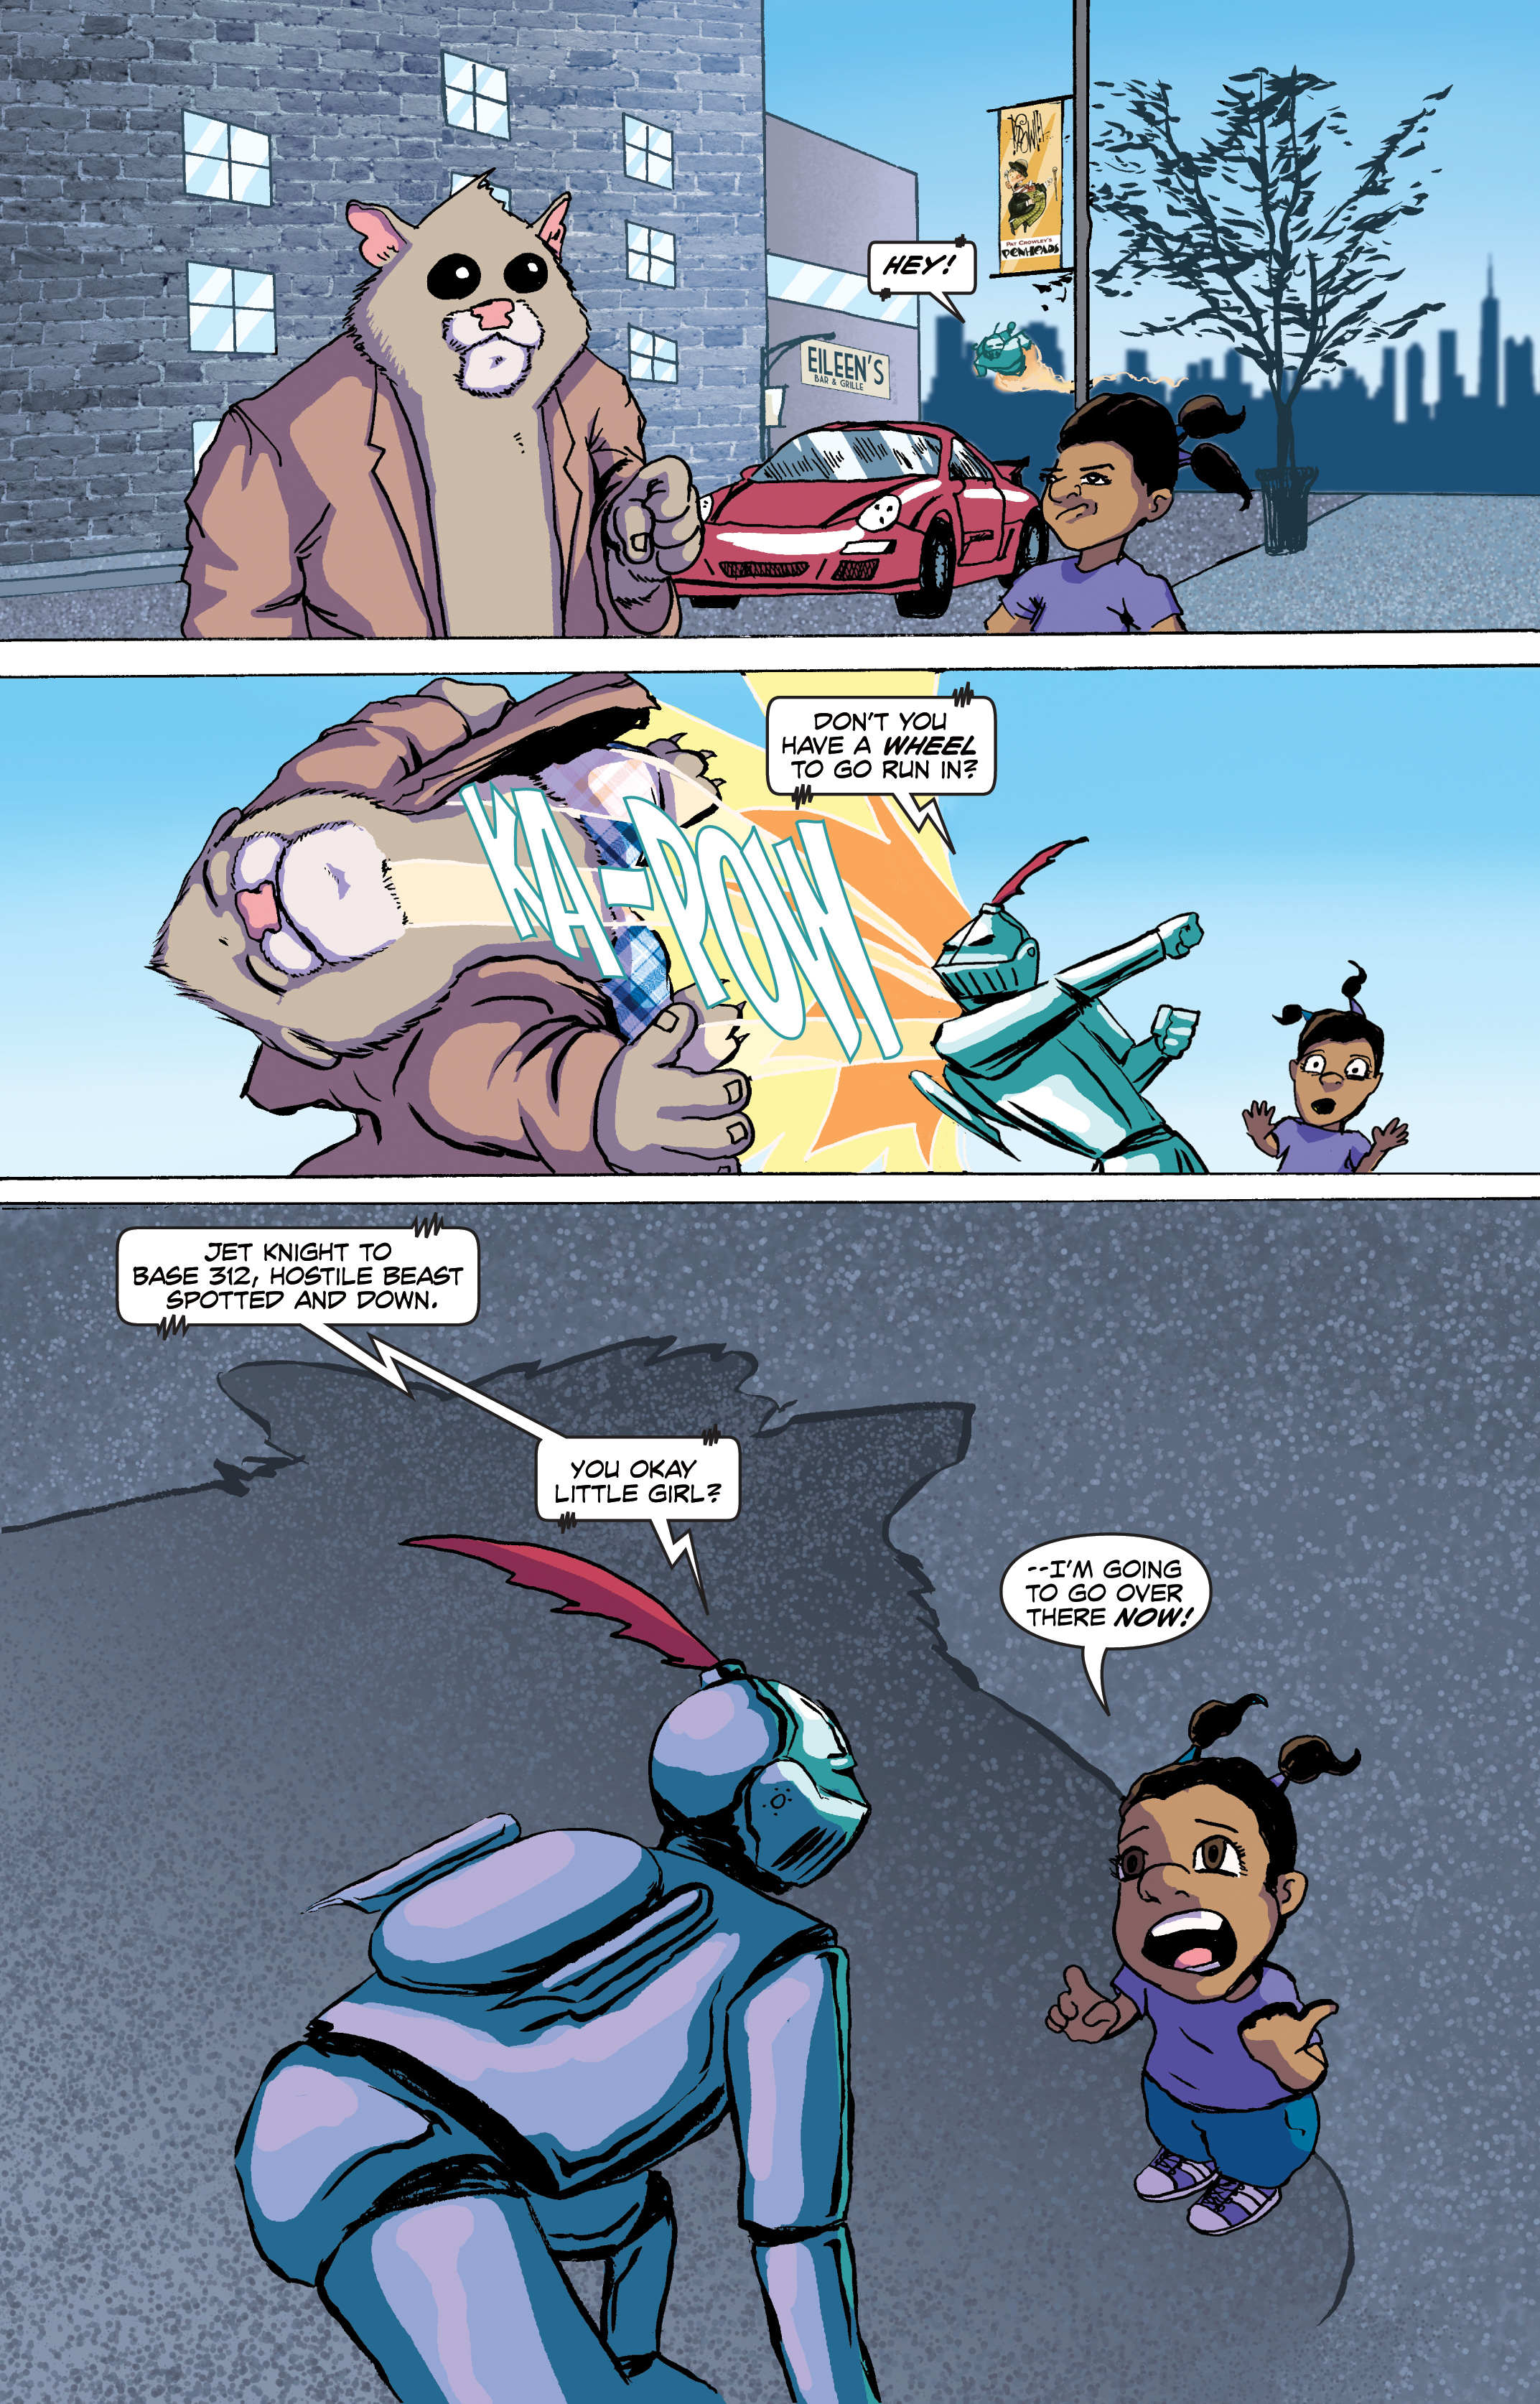 PAGE 6 Panel 1. The two look towards us as someone calls out. JET KNIGHT: Hey!  Panel 2. We see Jet Knight sock Roosevelt and watch him fly towards us. JET KNIGHT: Don't you have a wheel to go run in? Panel 3. Jet Knight leans down to talk to Shayna as we see Roosevelt sail into a building.  JET KNIGHT: Jet Knight to Base 312, hostile beast spotted and down.  You okay little girl?  SHAYNA: Um…  Panel 4. Shayna looks a bit nervous and begins to walk off panel as a shadow looms over Jet Knight. SHAYNA: …I'm going to go over there now.